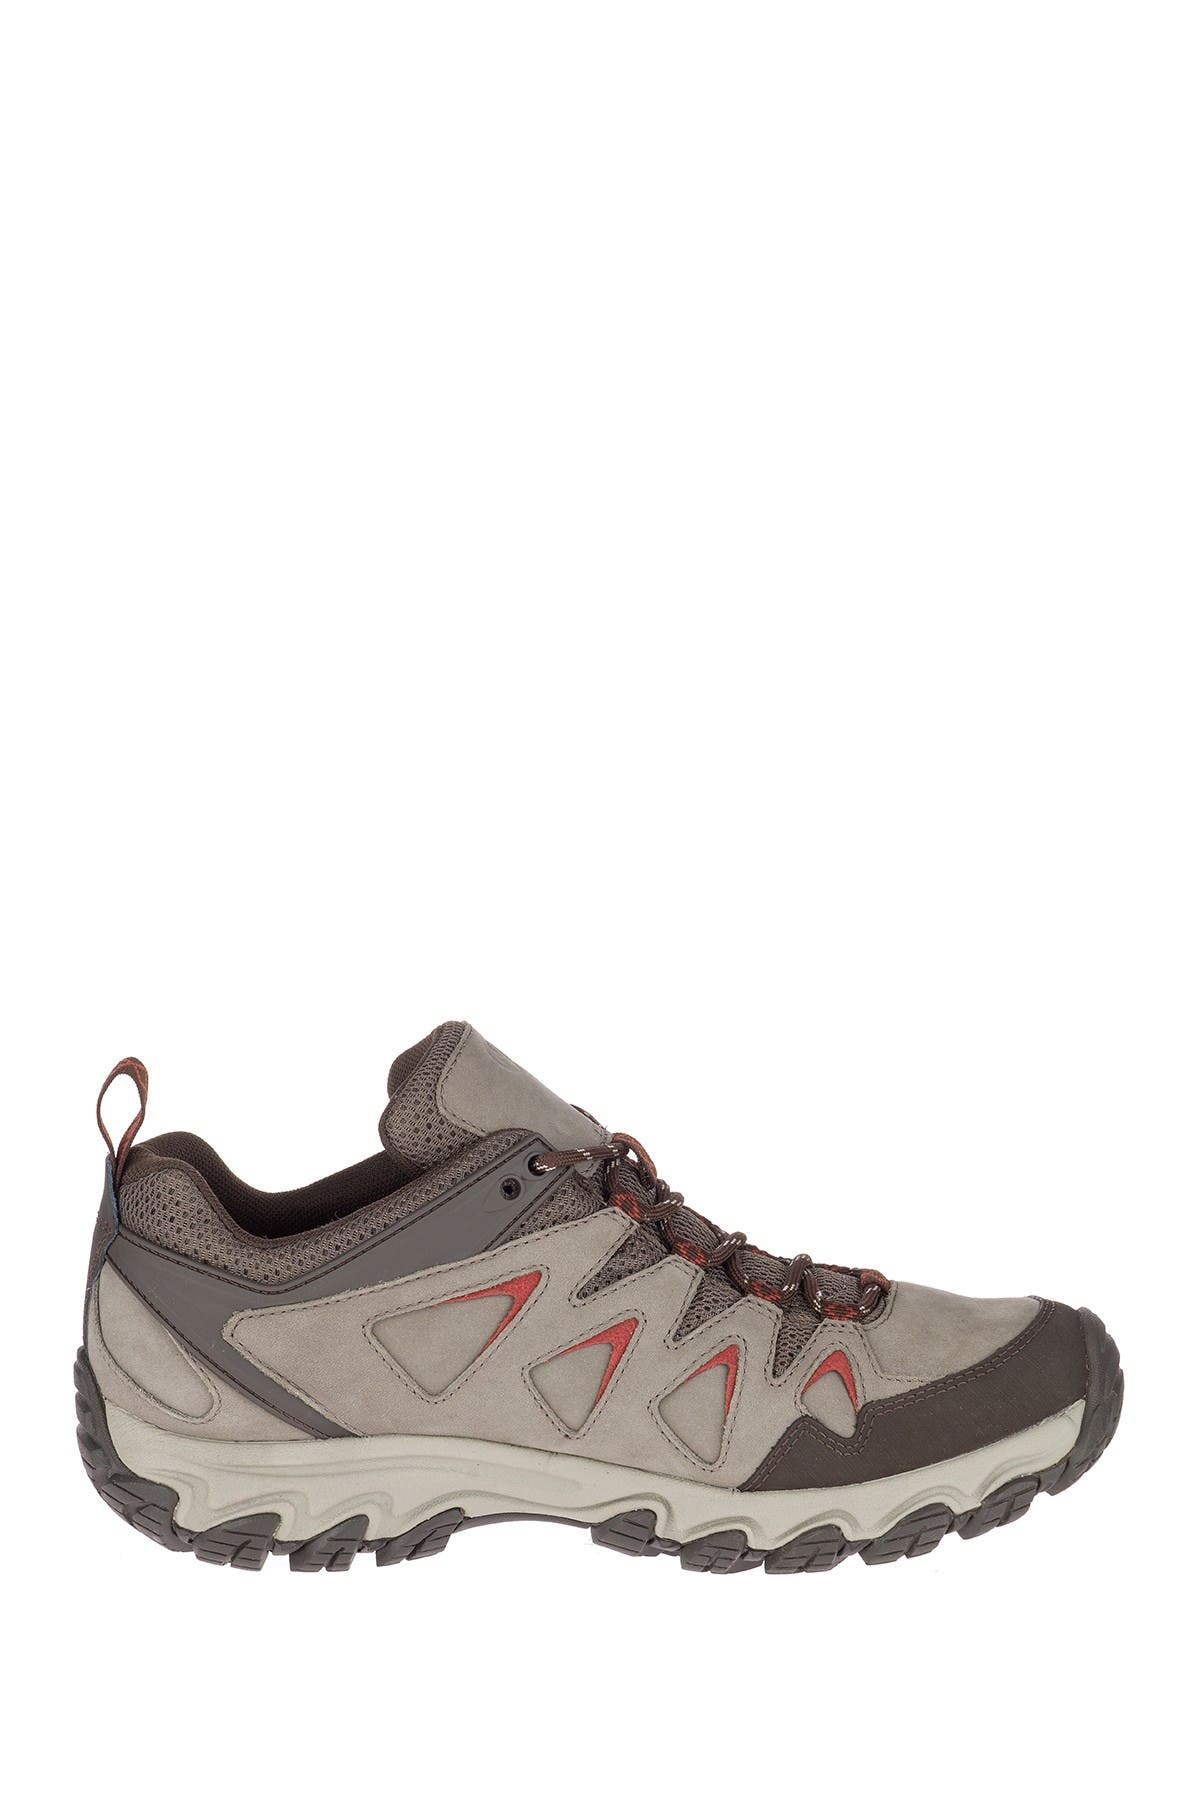 Image of Merrell Pulsate 2 Leather Hiking Sneaker